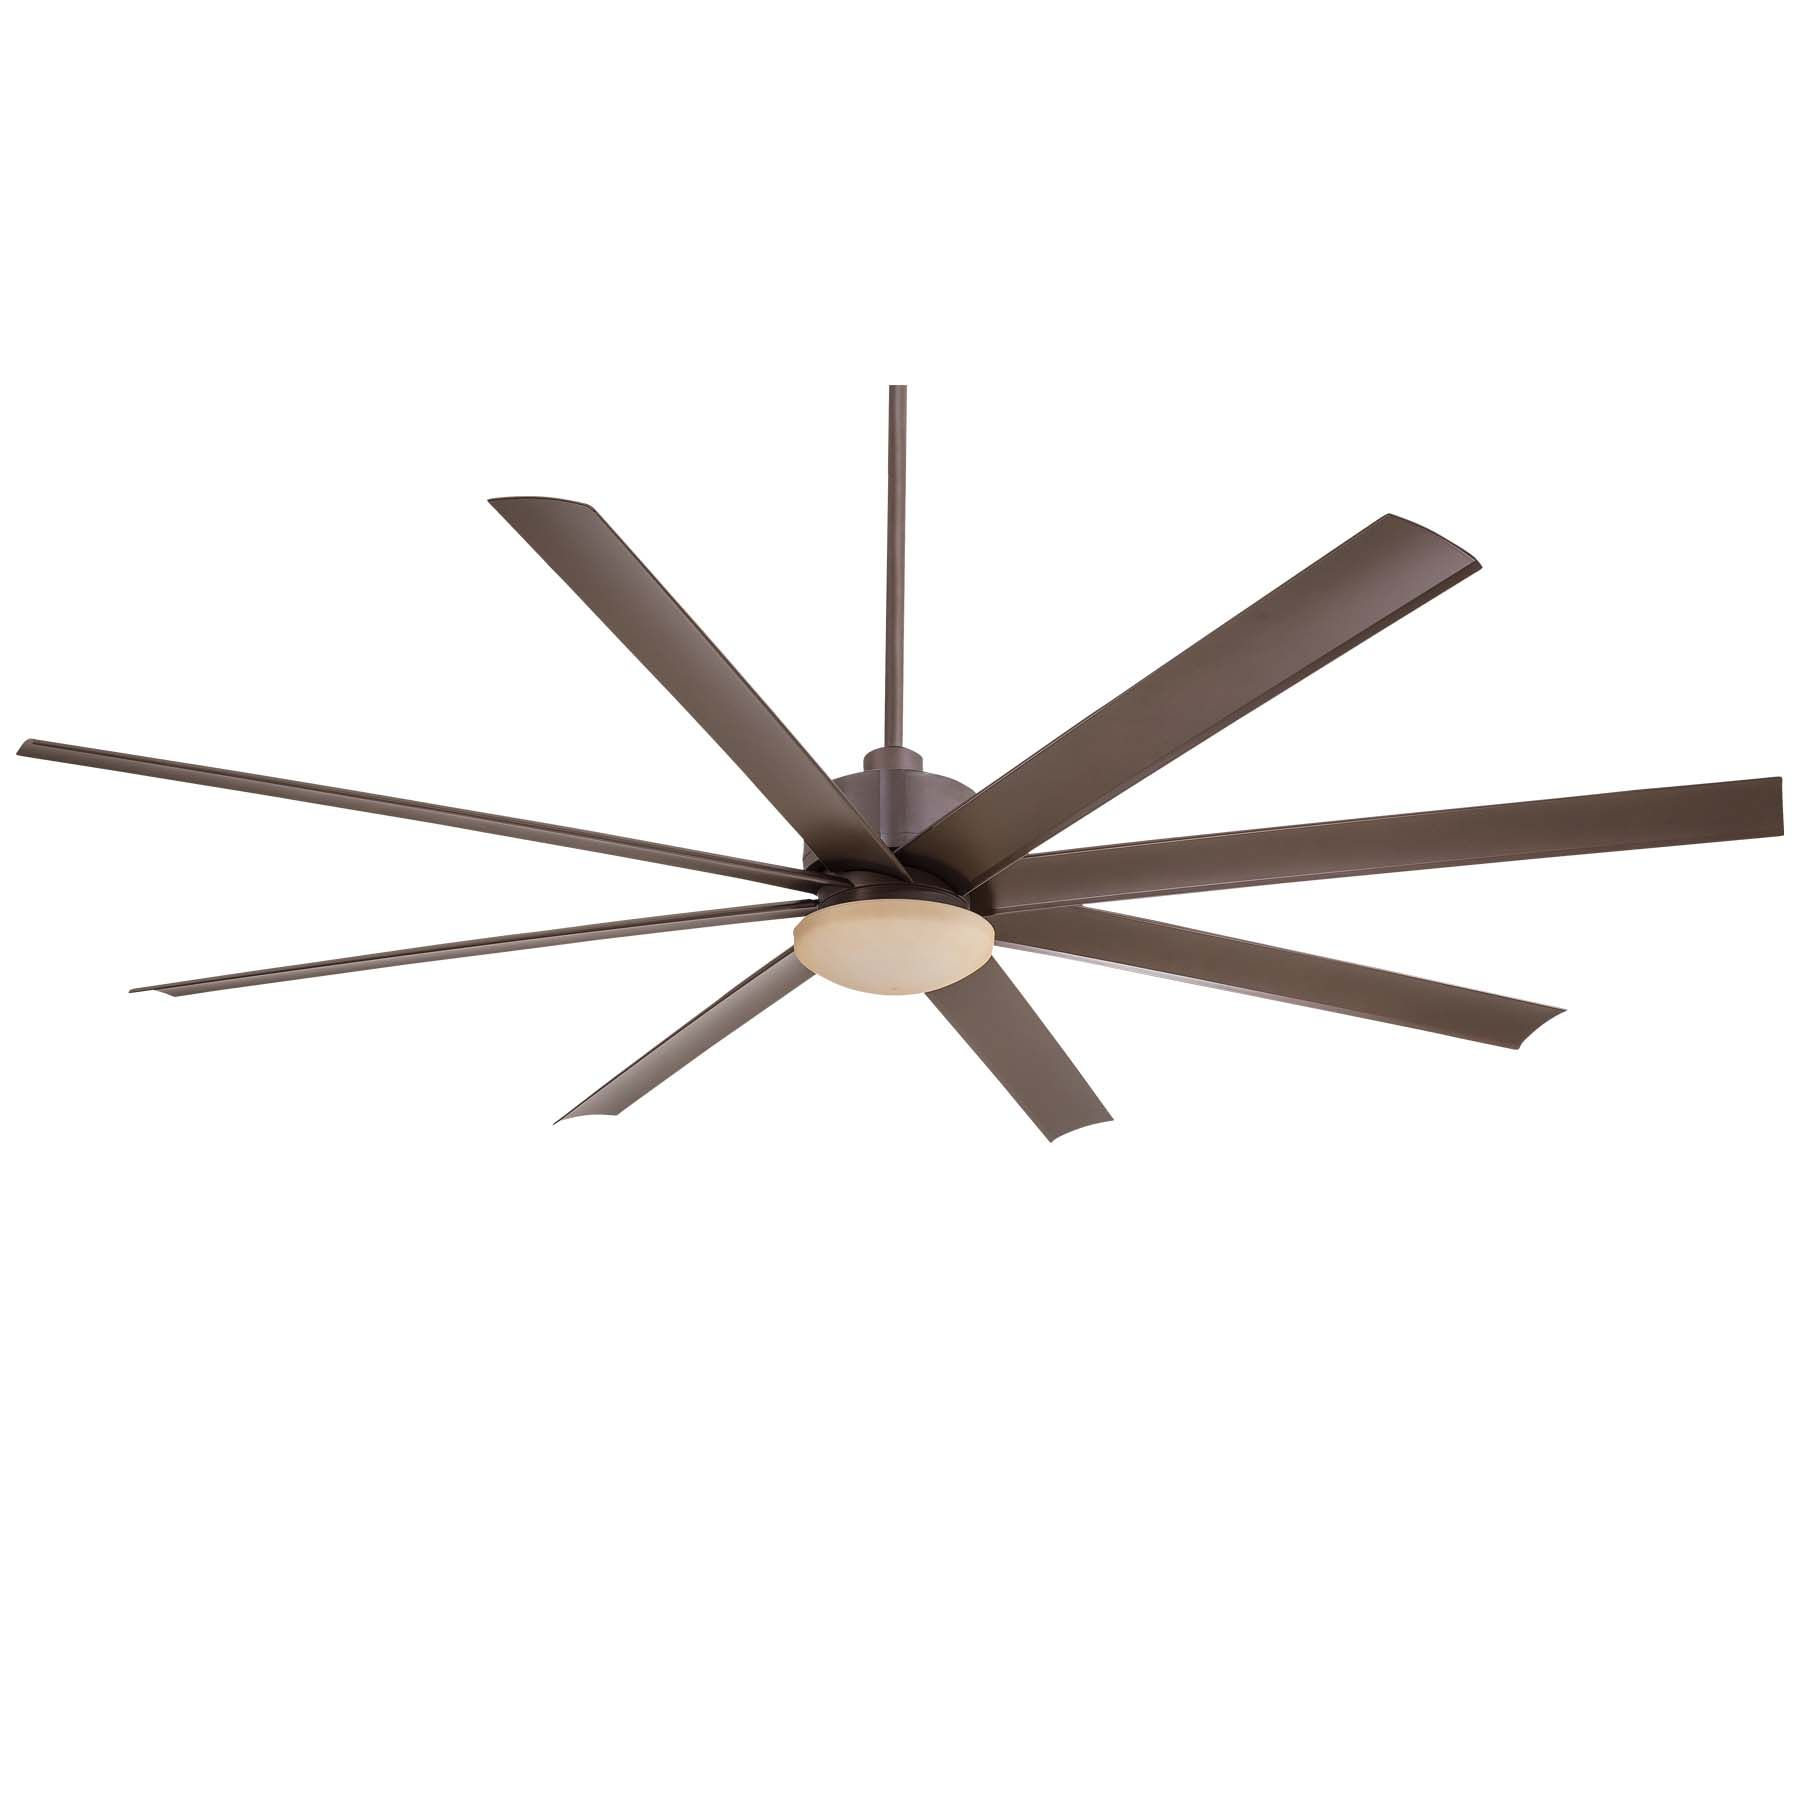 Pin On Fans